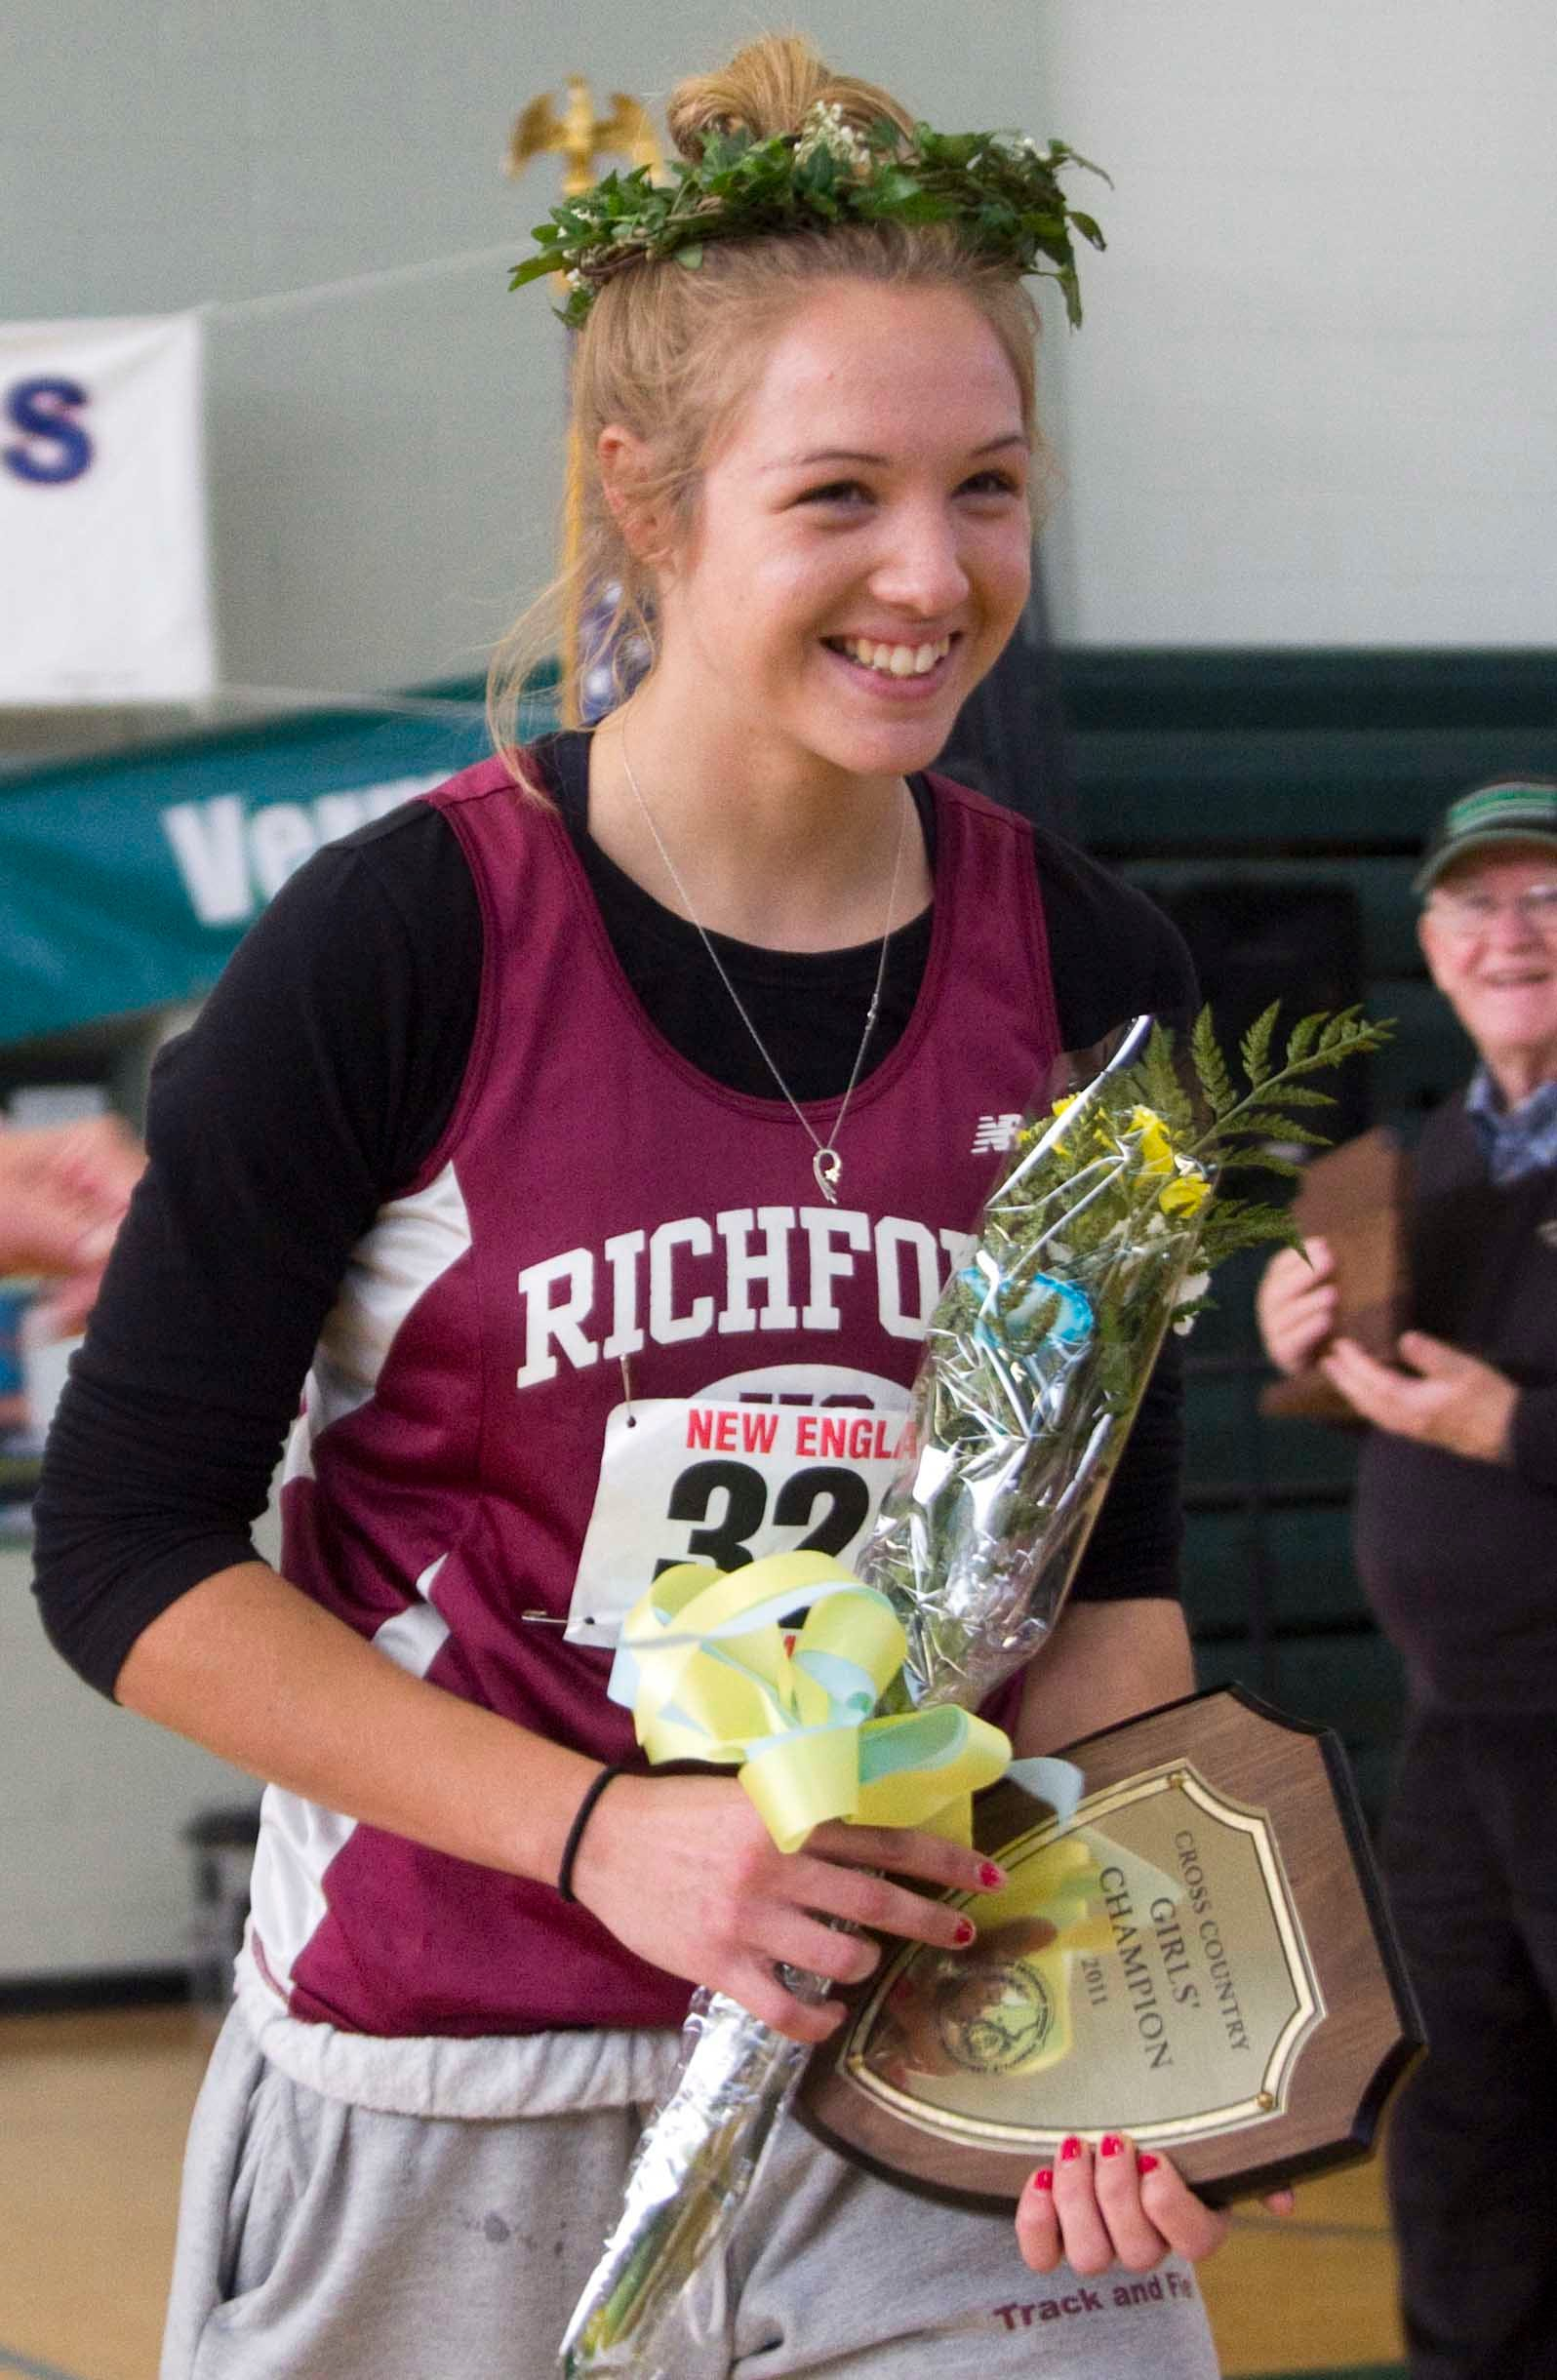 Elle Purrier St. Pierre is honored after winning the 2011 New England XC title.